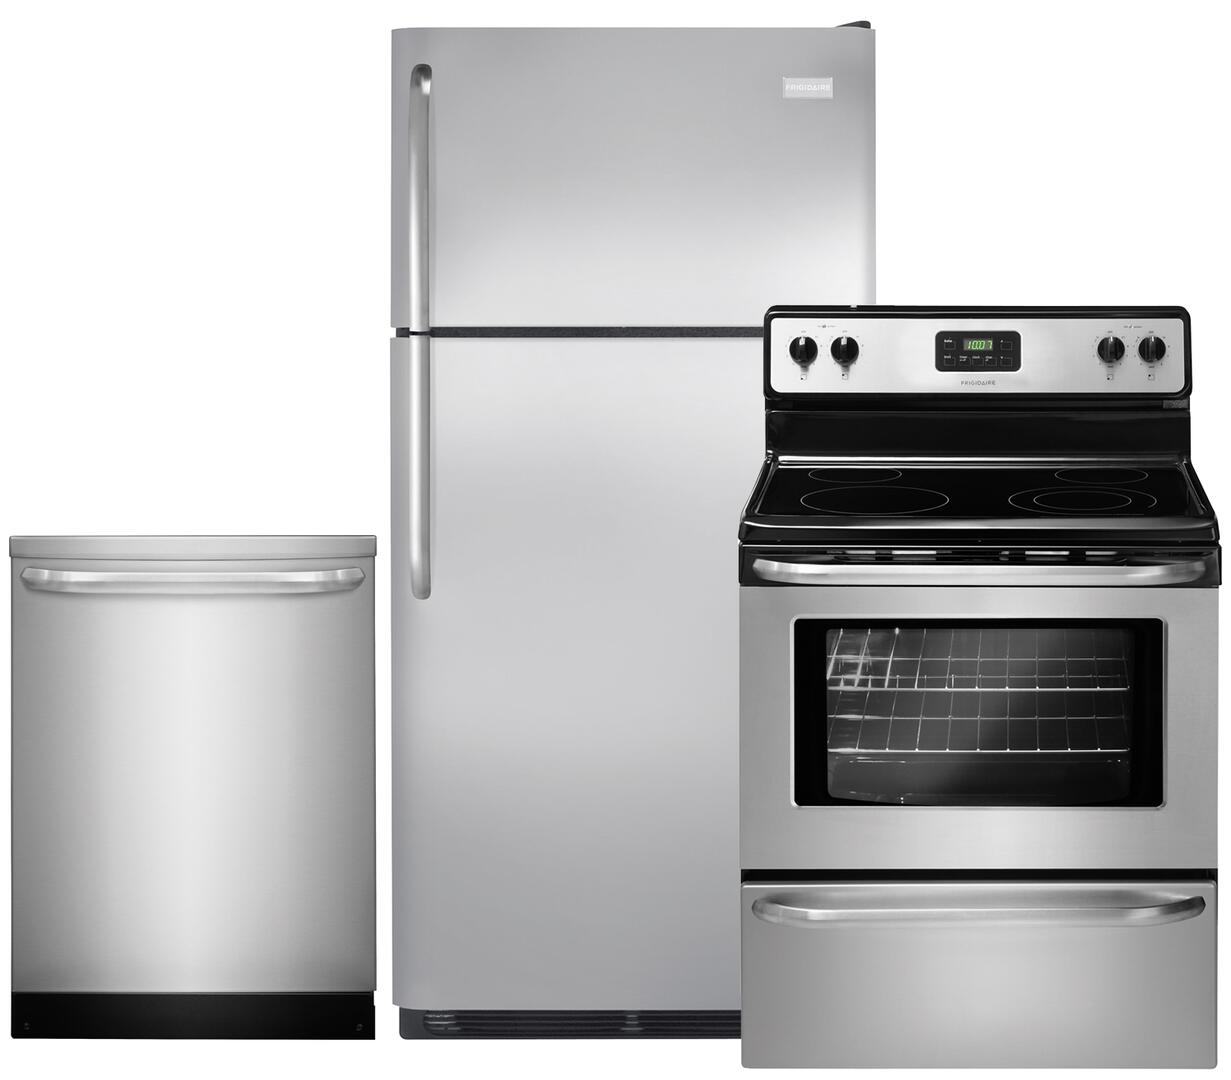 Frigidaire 655891 Kitchen Appliance Packages